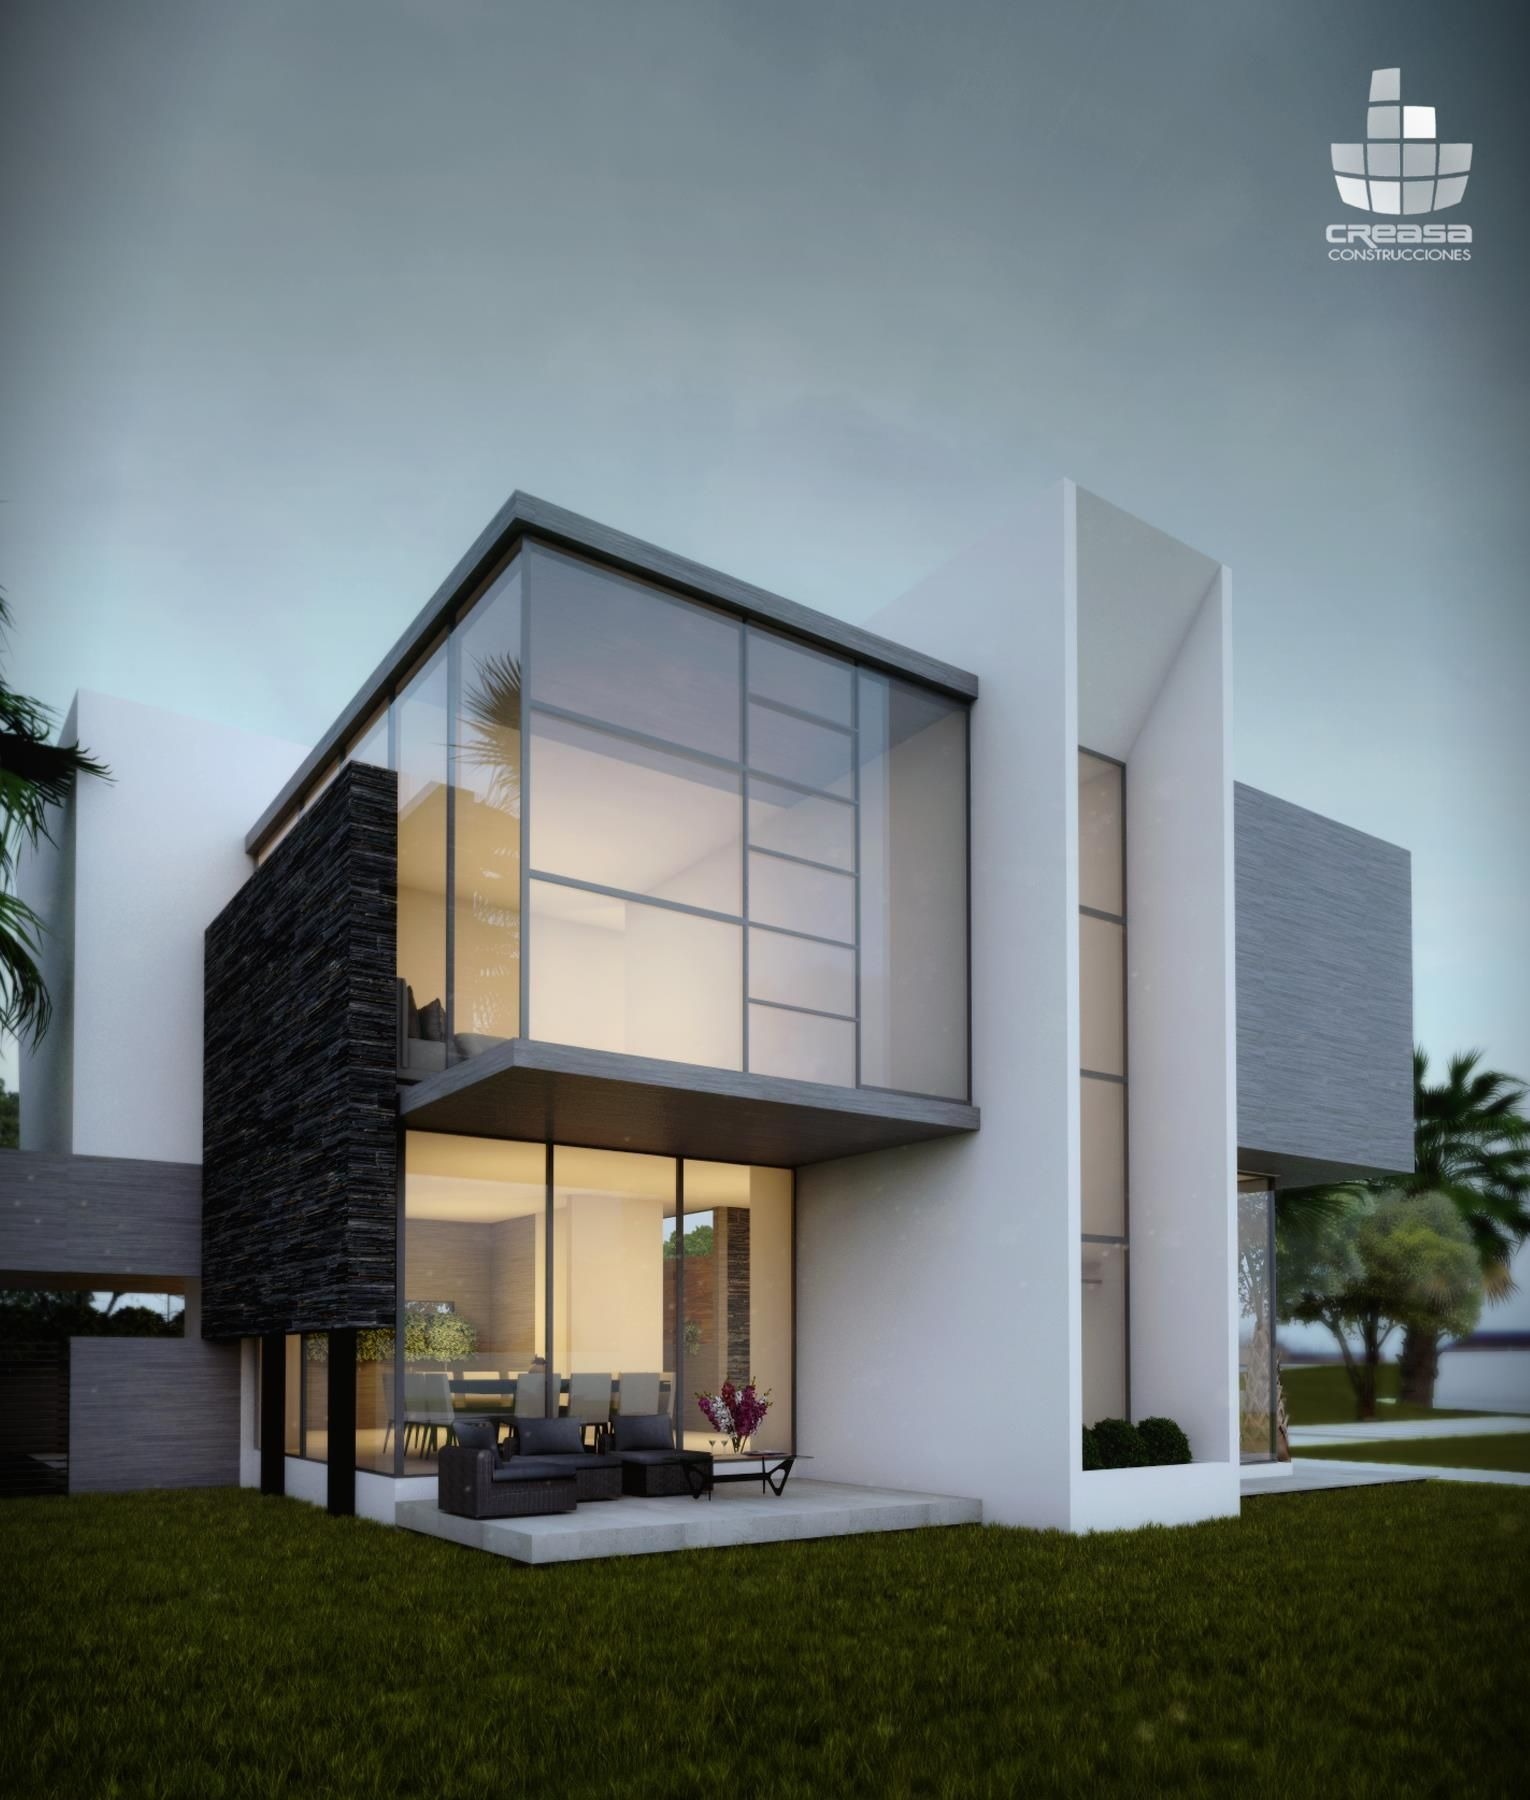 Creasa modern architecture pinterest villas house and architecture Home building architecture